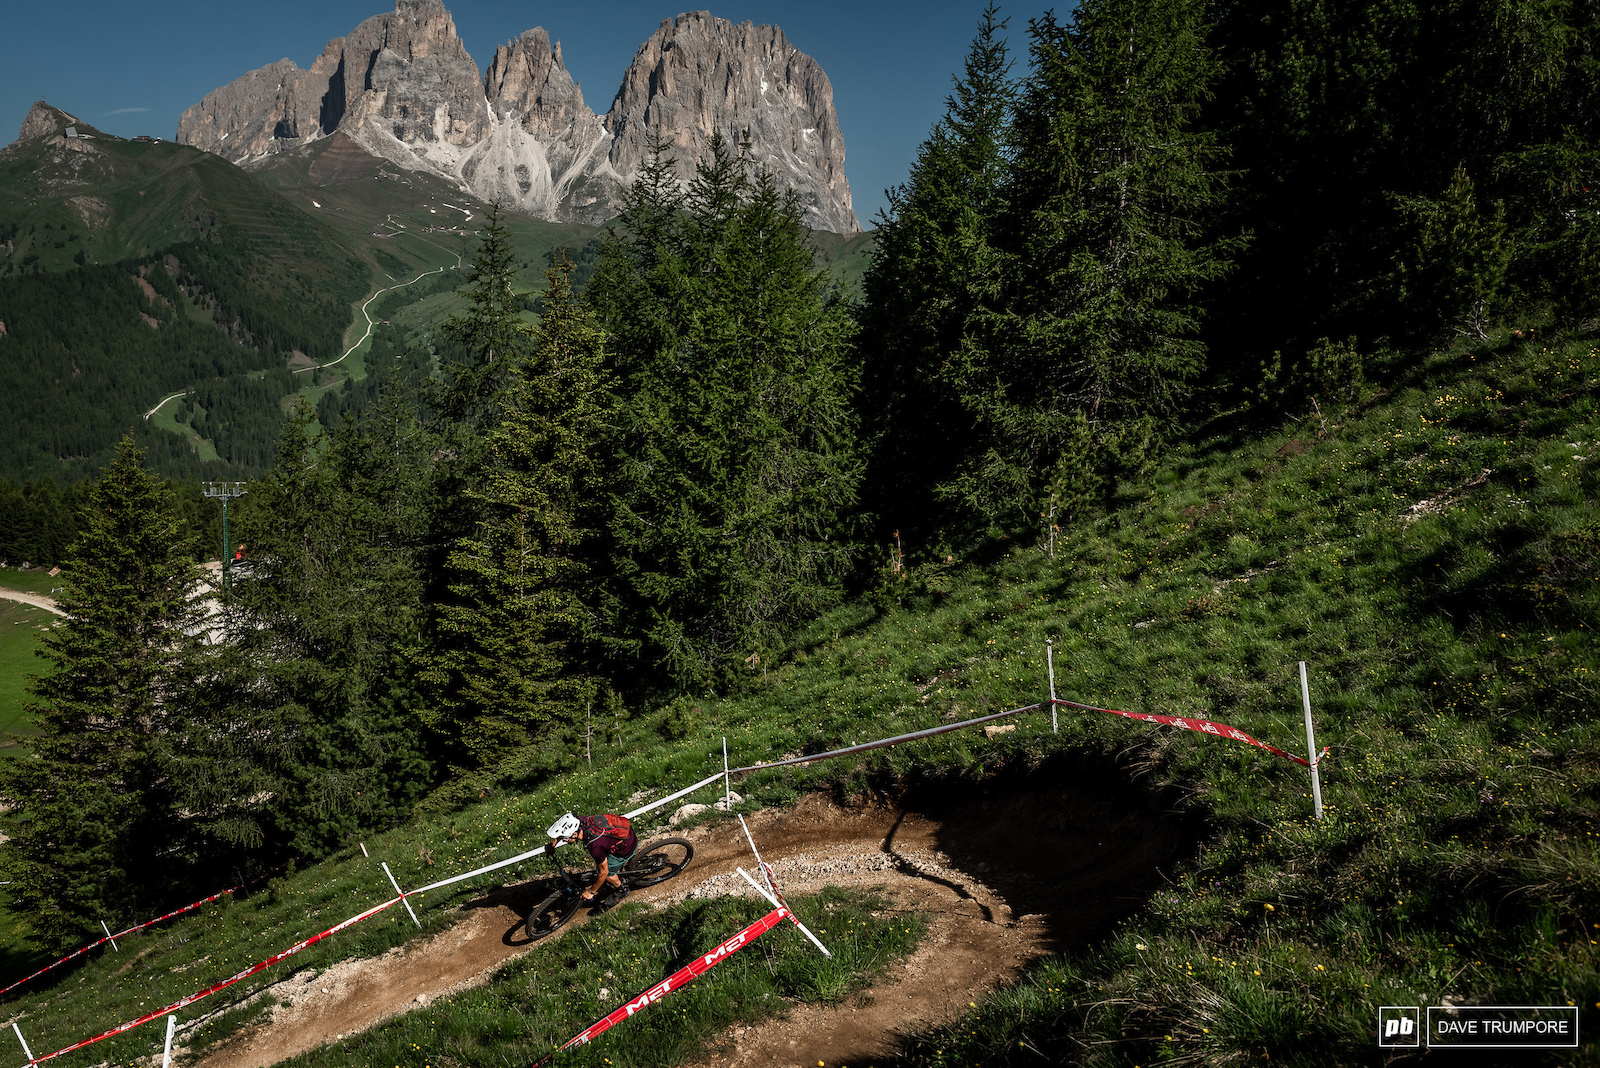 The top of Stage 1 offers some brief views of the Dolomites before diving in to the forest.